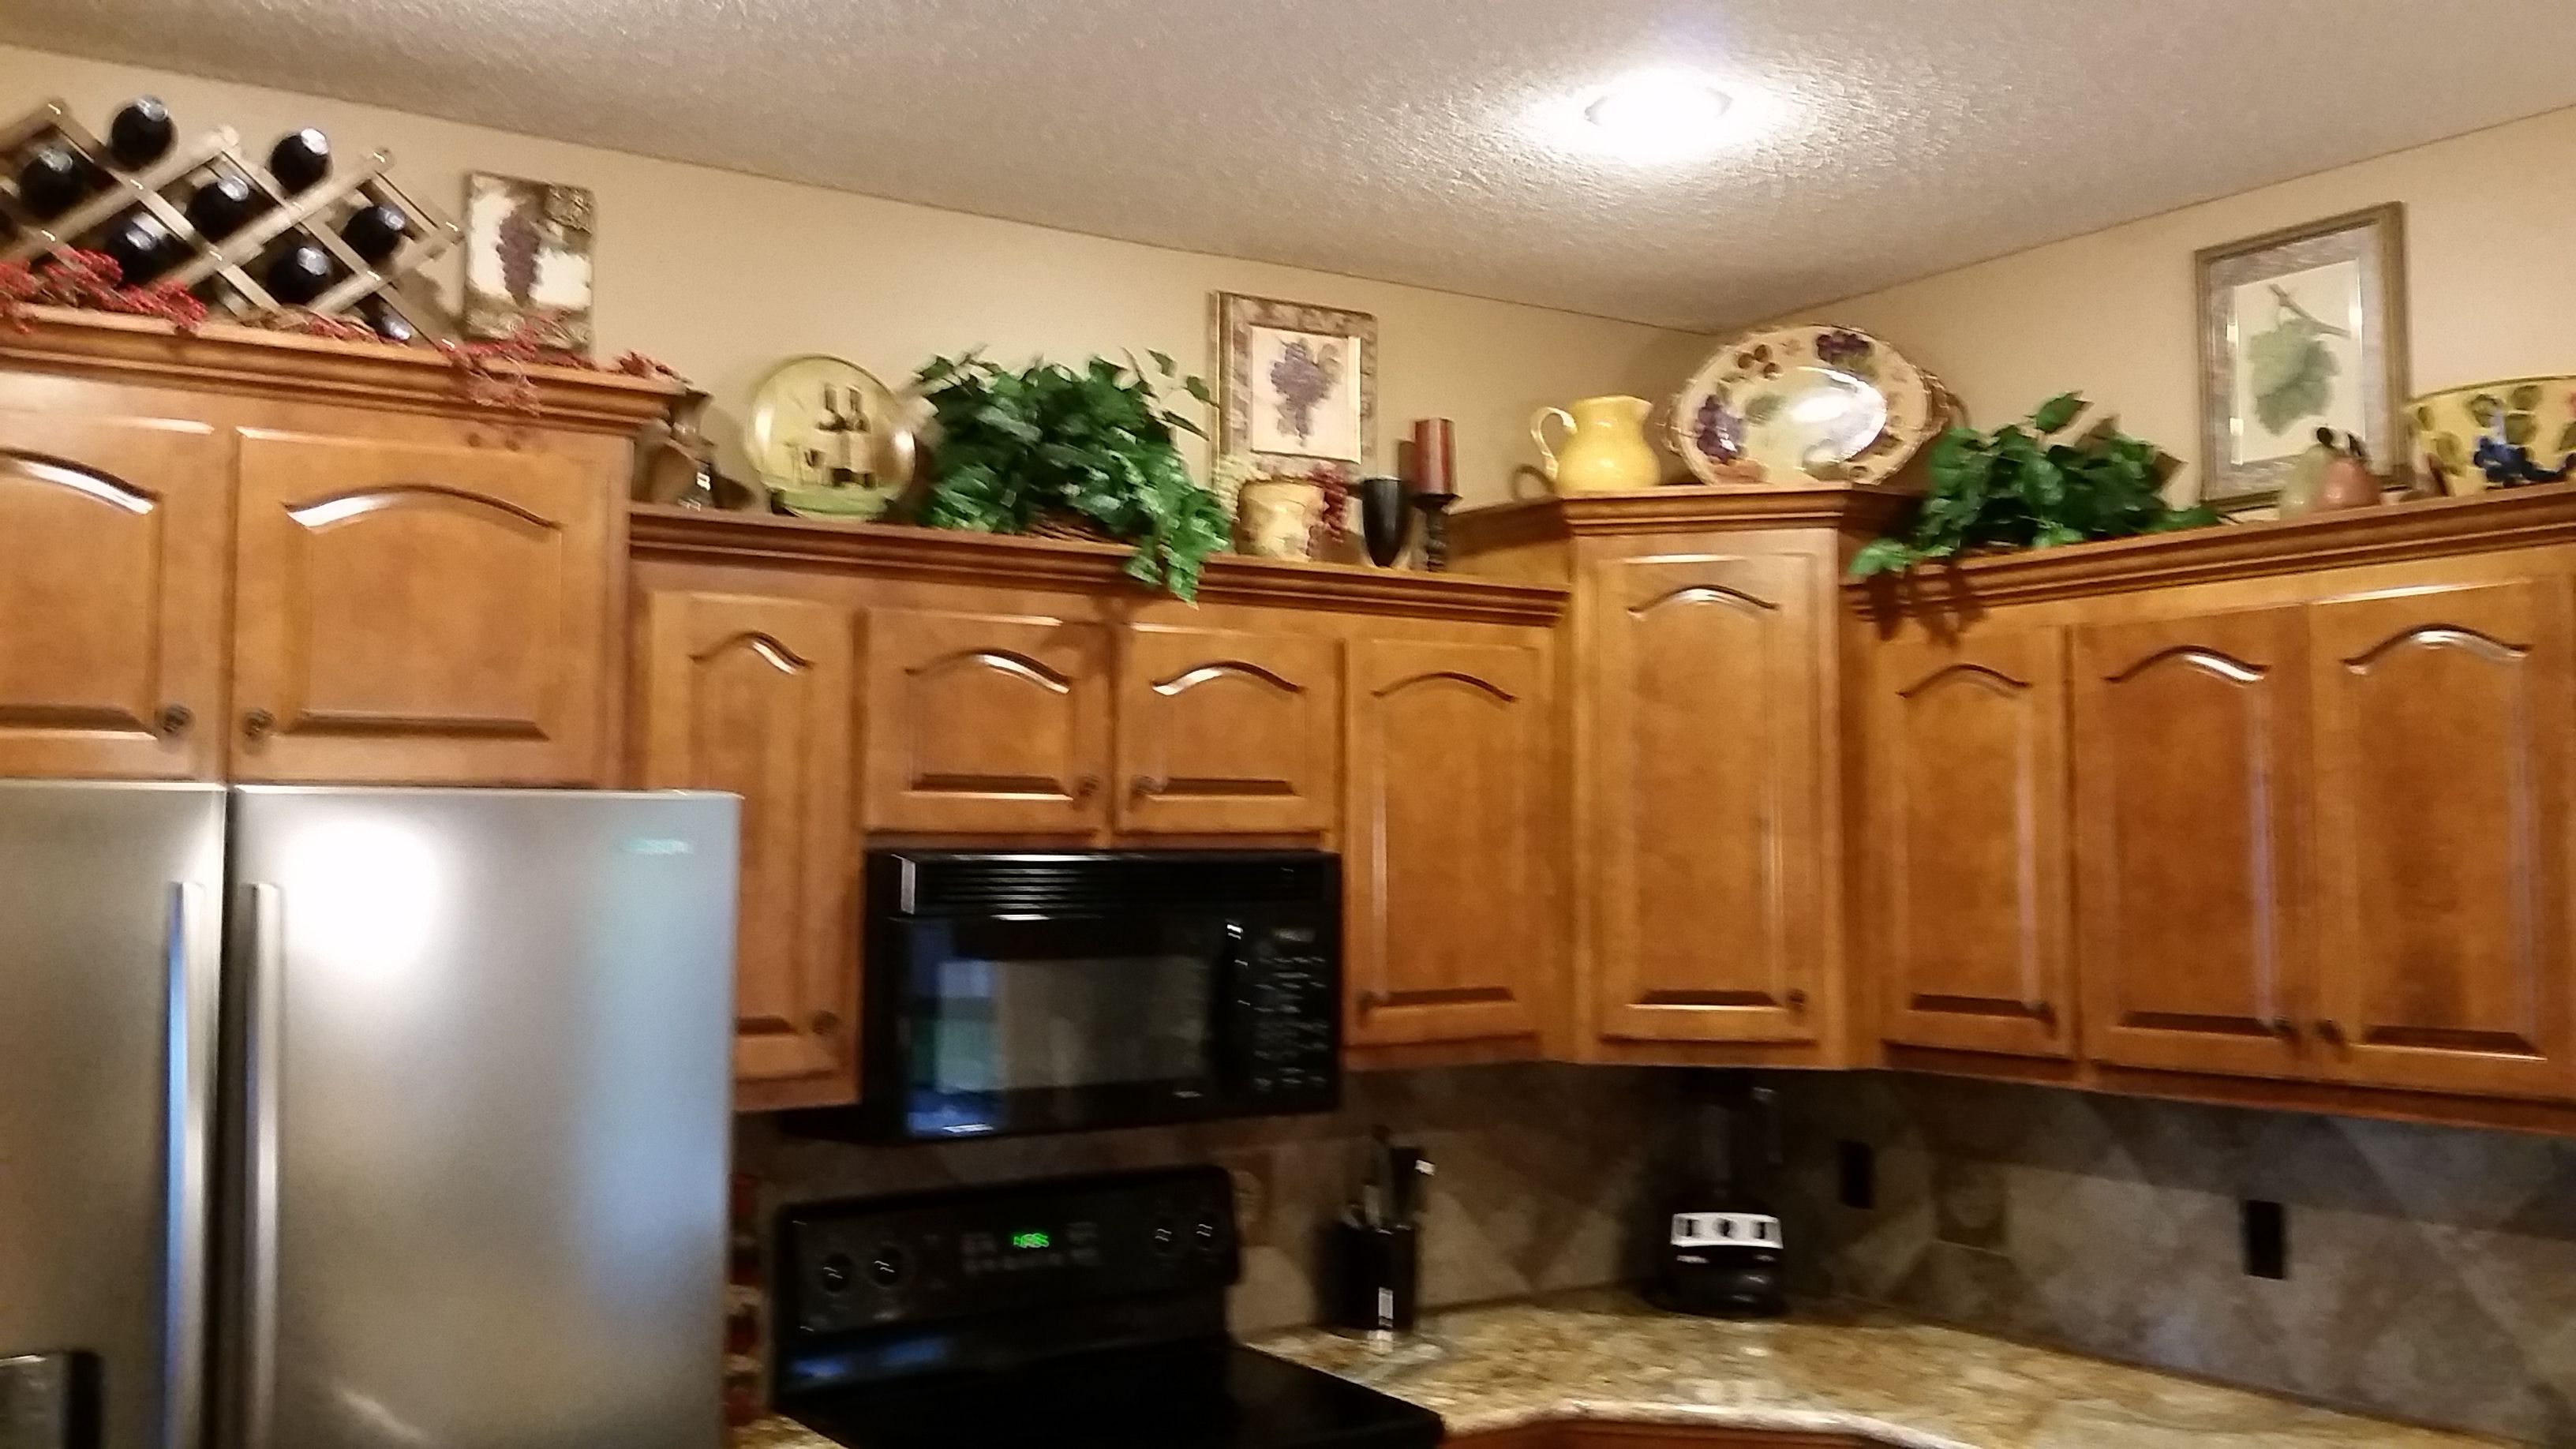 My Husband And I Had A Great Time Decorating Above The Kitchen Cabinets With It Kitchen Cabinets Decor Above Kitchen Cabinets Decorating Above Kitchen Cabinets